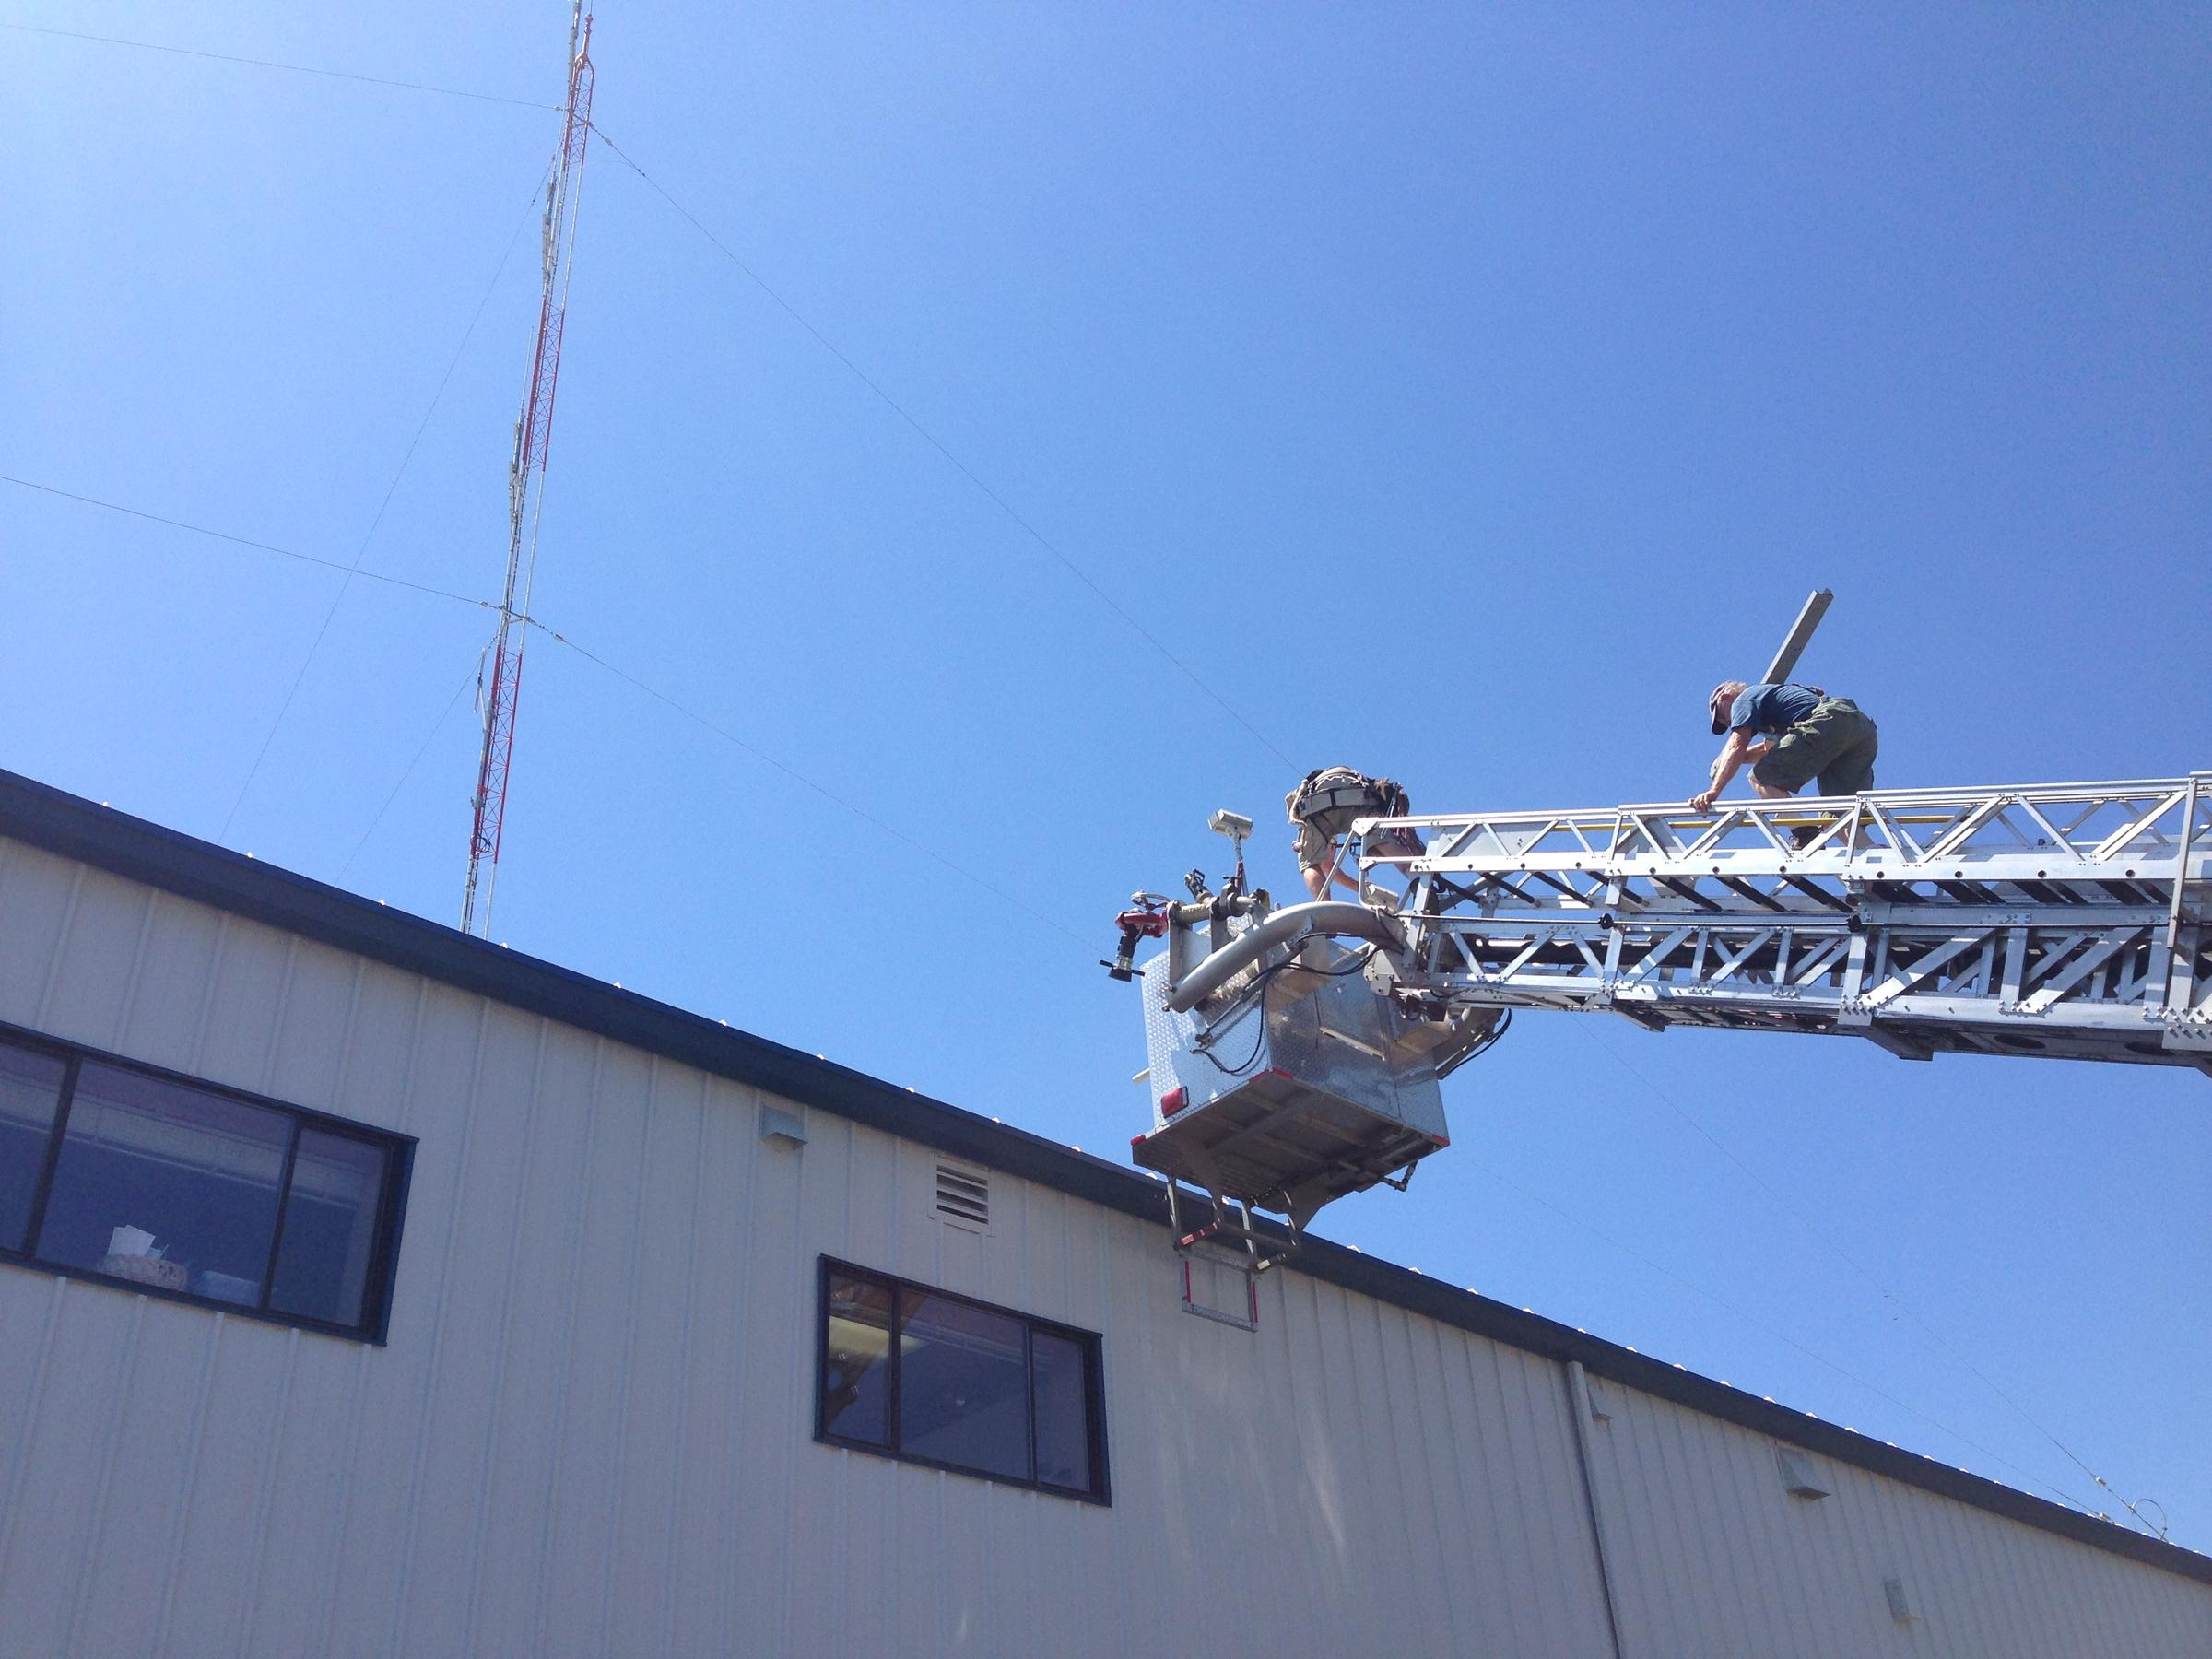 KOCF is On The Air! New Low-Power FM Station For Fern Ridge